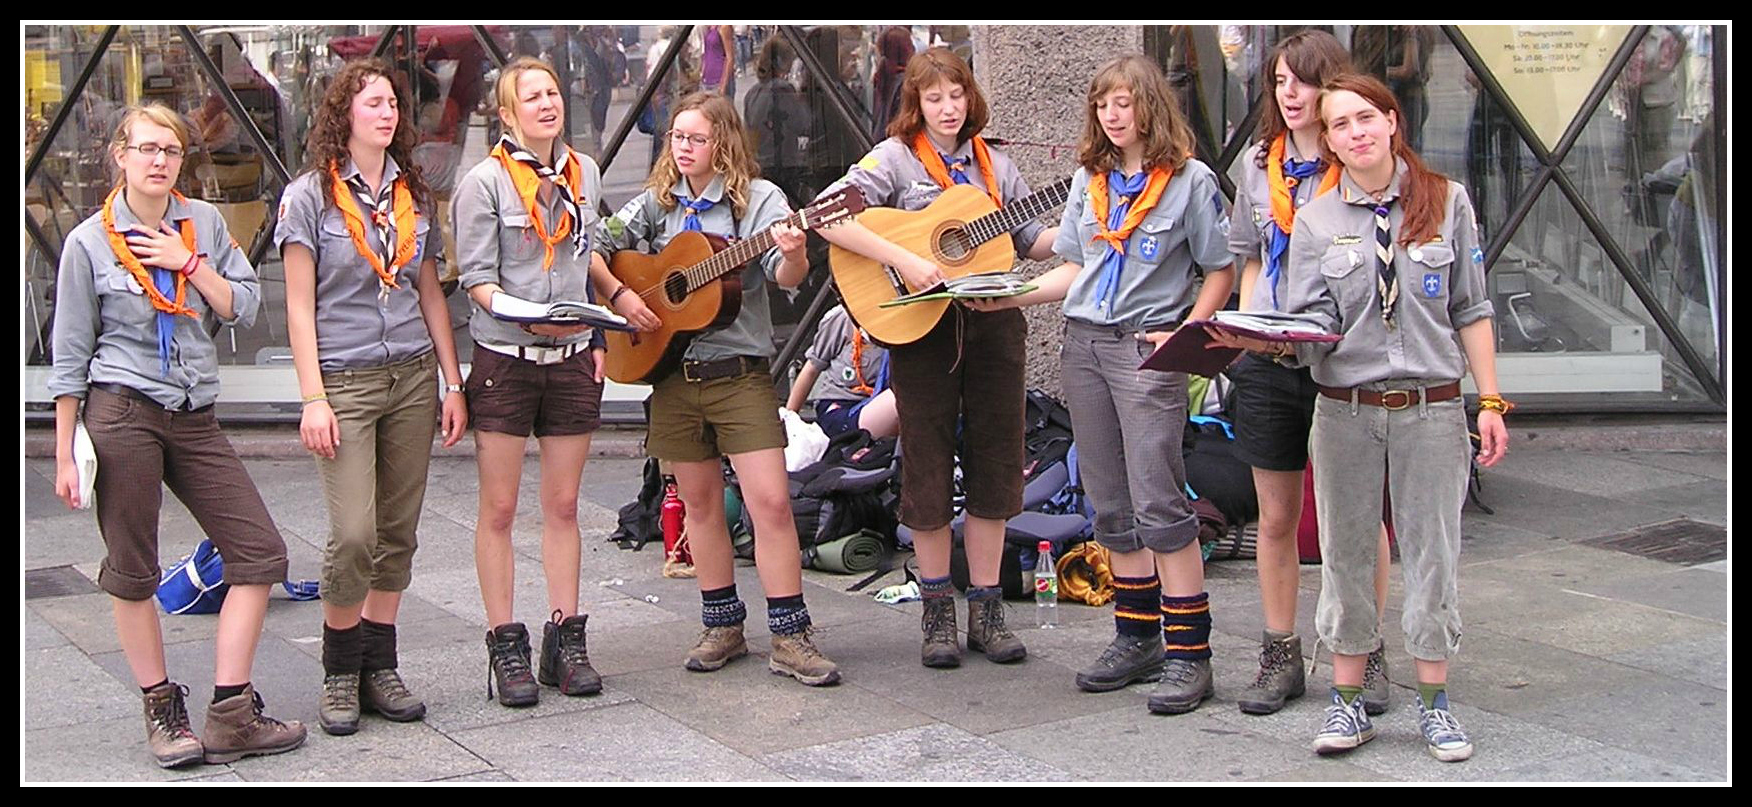 Girl Guides, Guiding movement, The Scouting Association